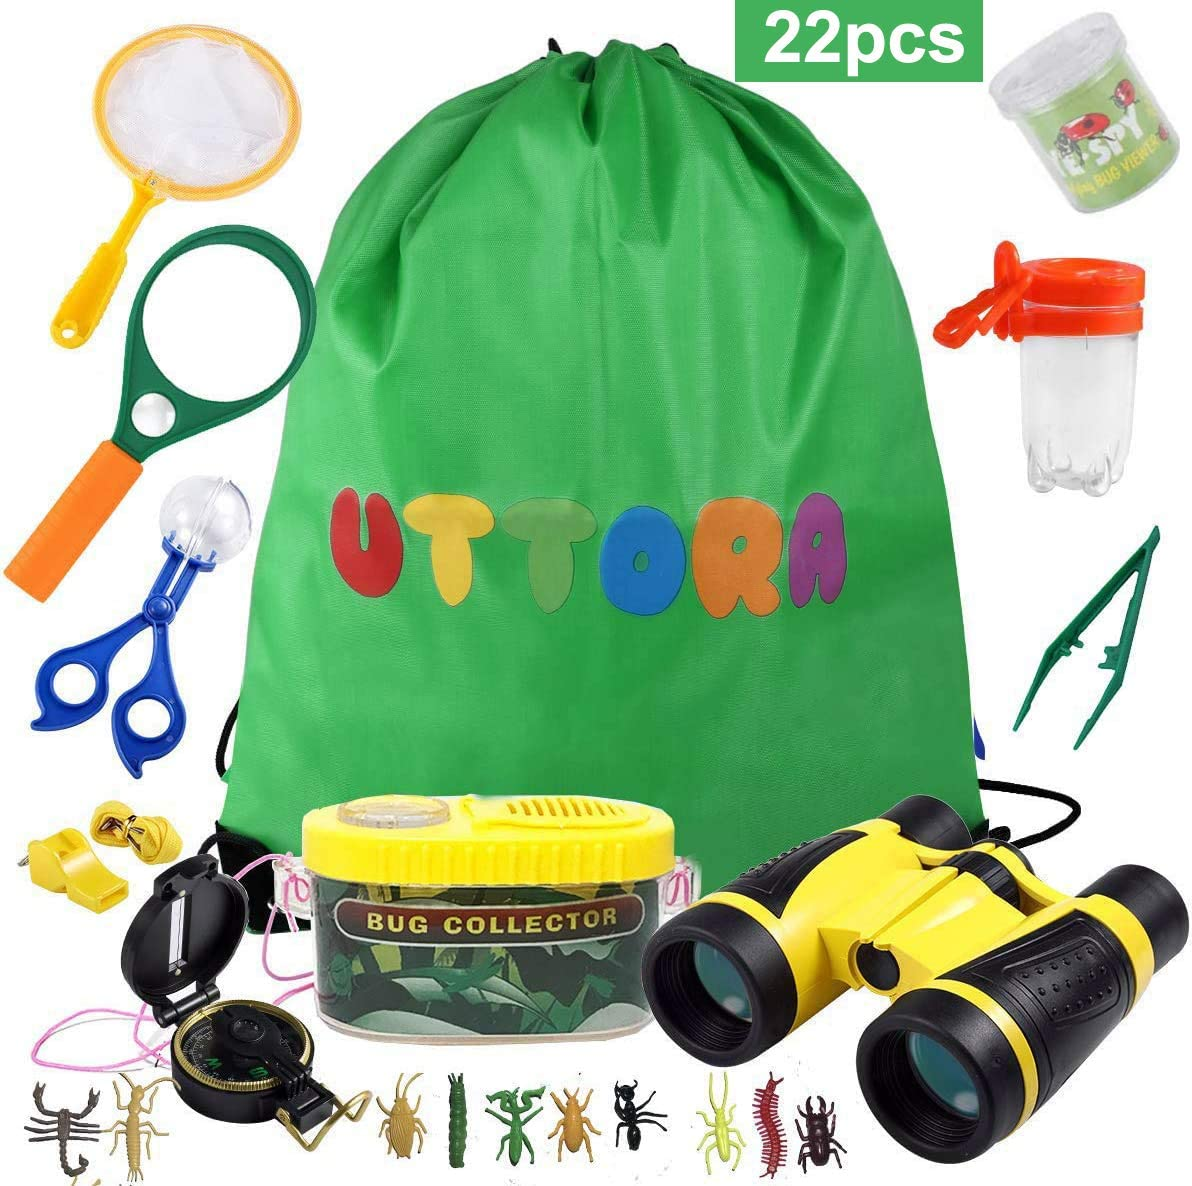 UTTORA Outdoor Explorer Kit (22 PCS) WAS £15.99 NOW £9.59 with 40% voucher on listing @ Amazon